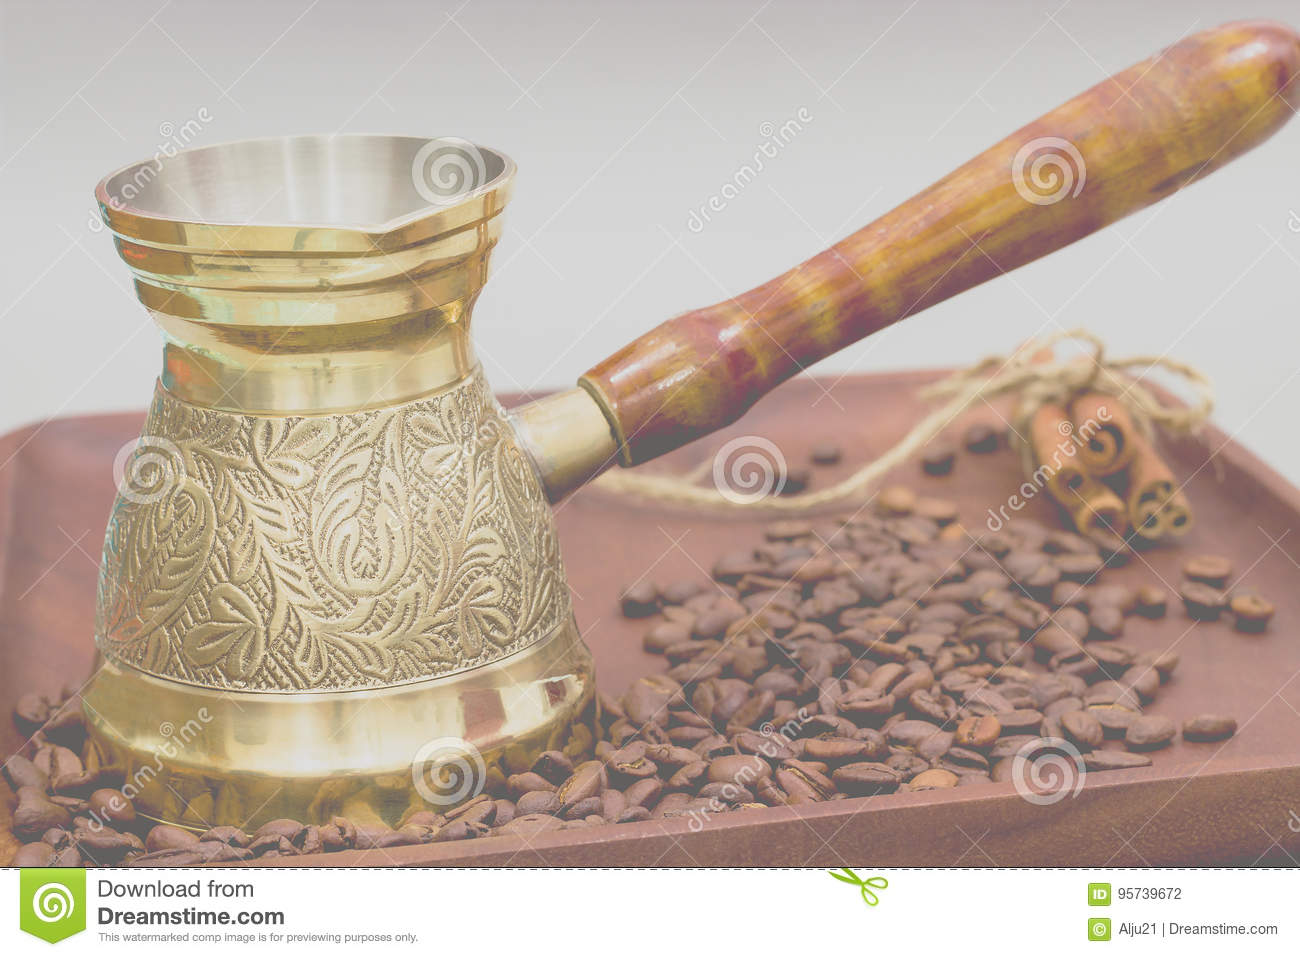 Copper coffee pot or ibrik with coffee beans and cinnamon sticks